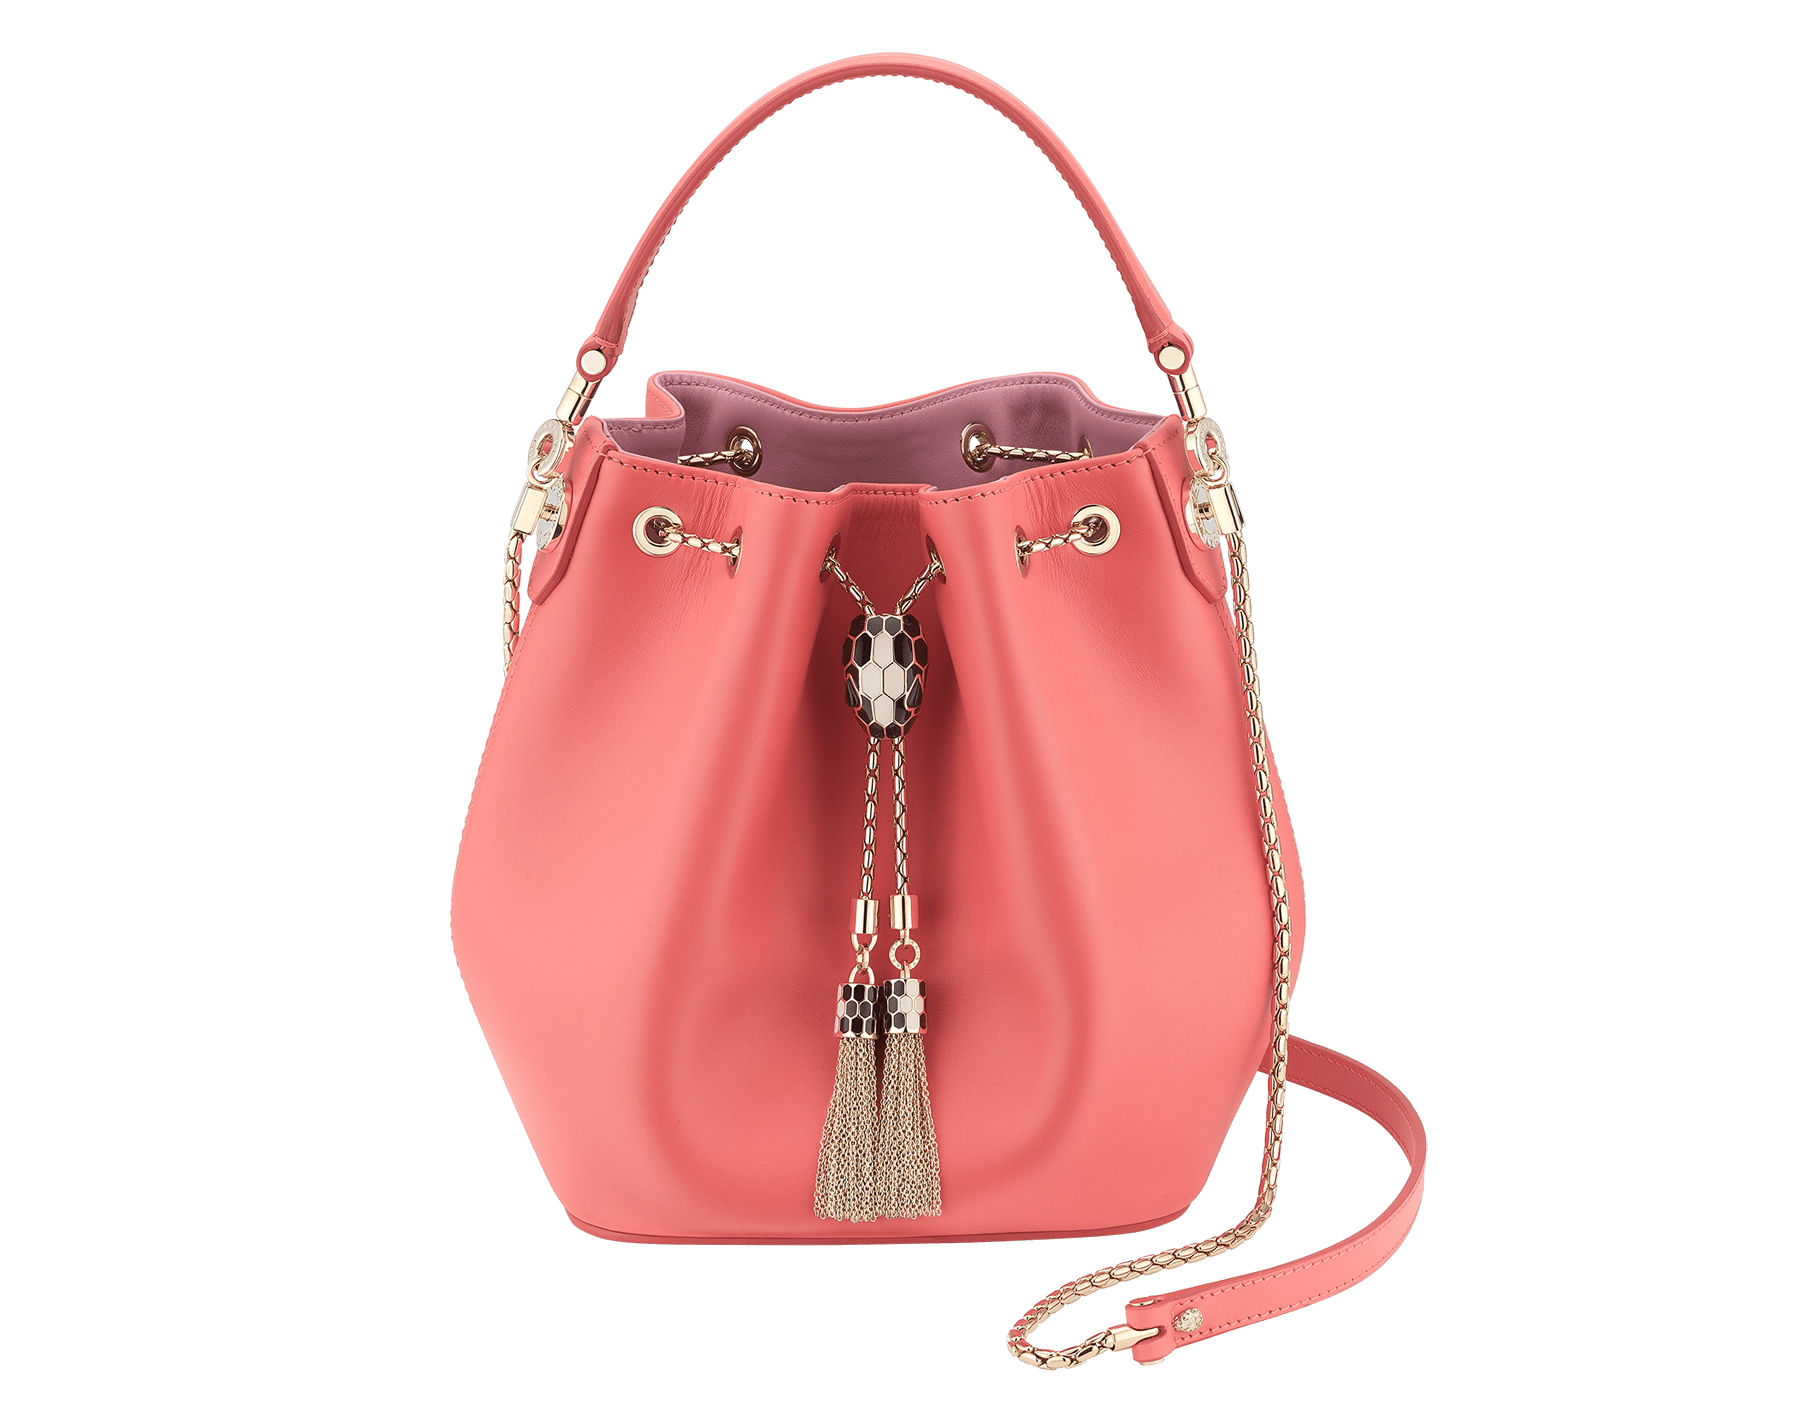 Serpenti Forever bucket in silky coral smooth calf leather and a flamingo quartz inner lining. Hardware in light gold plated brass and snakehead closure in black and white agate enamel, with eyes in black onyx. 288770 image 1